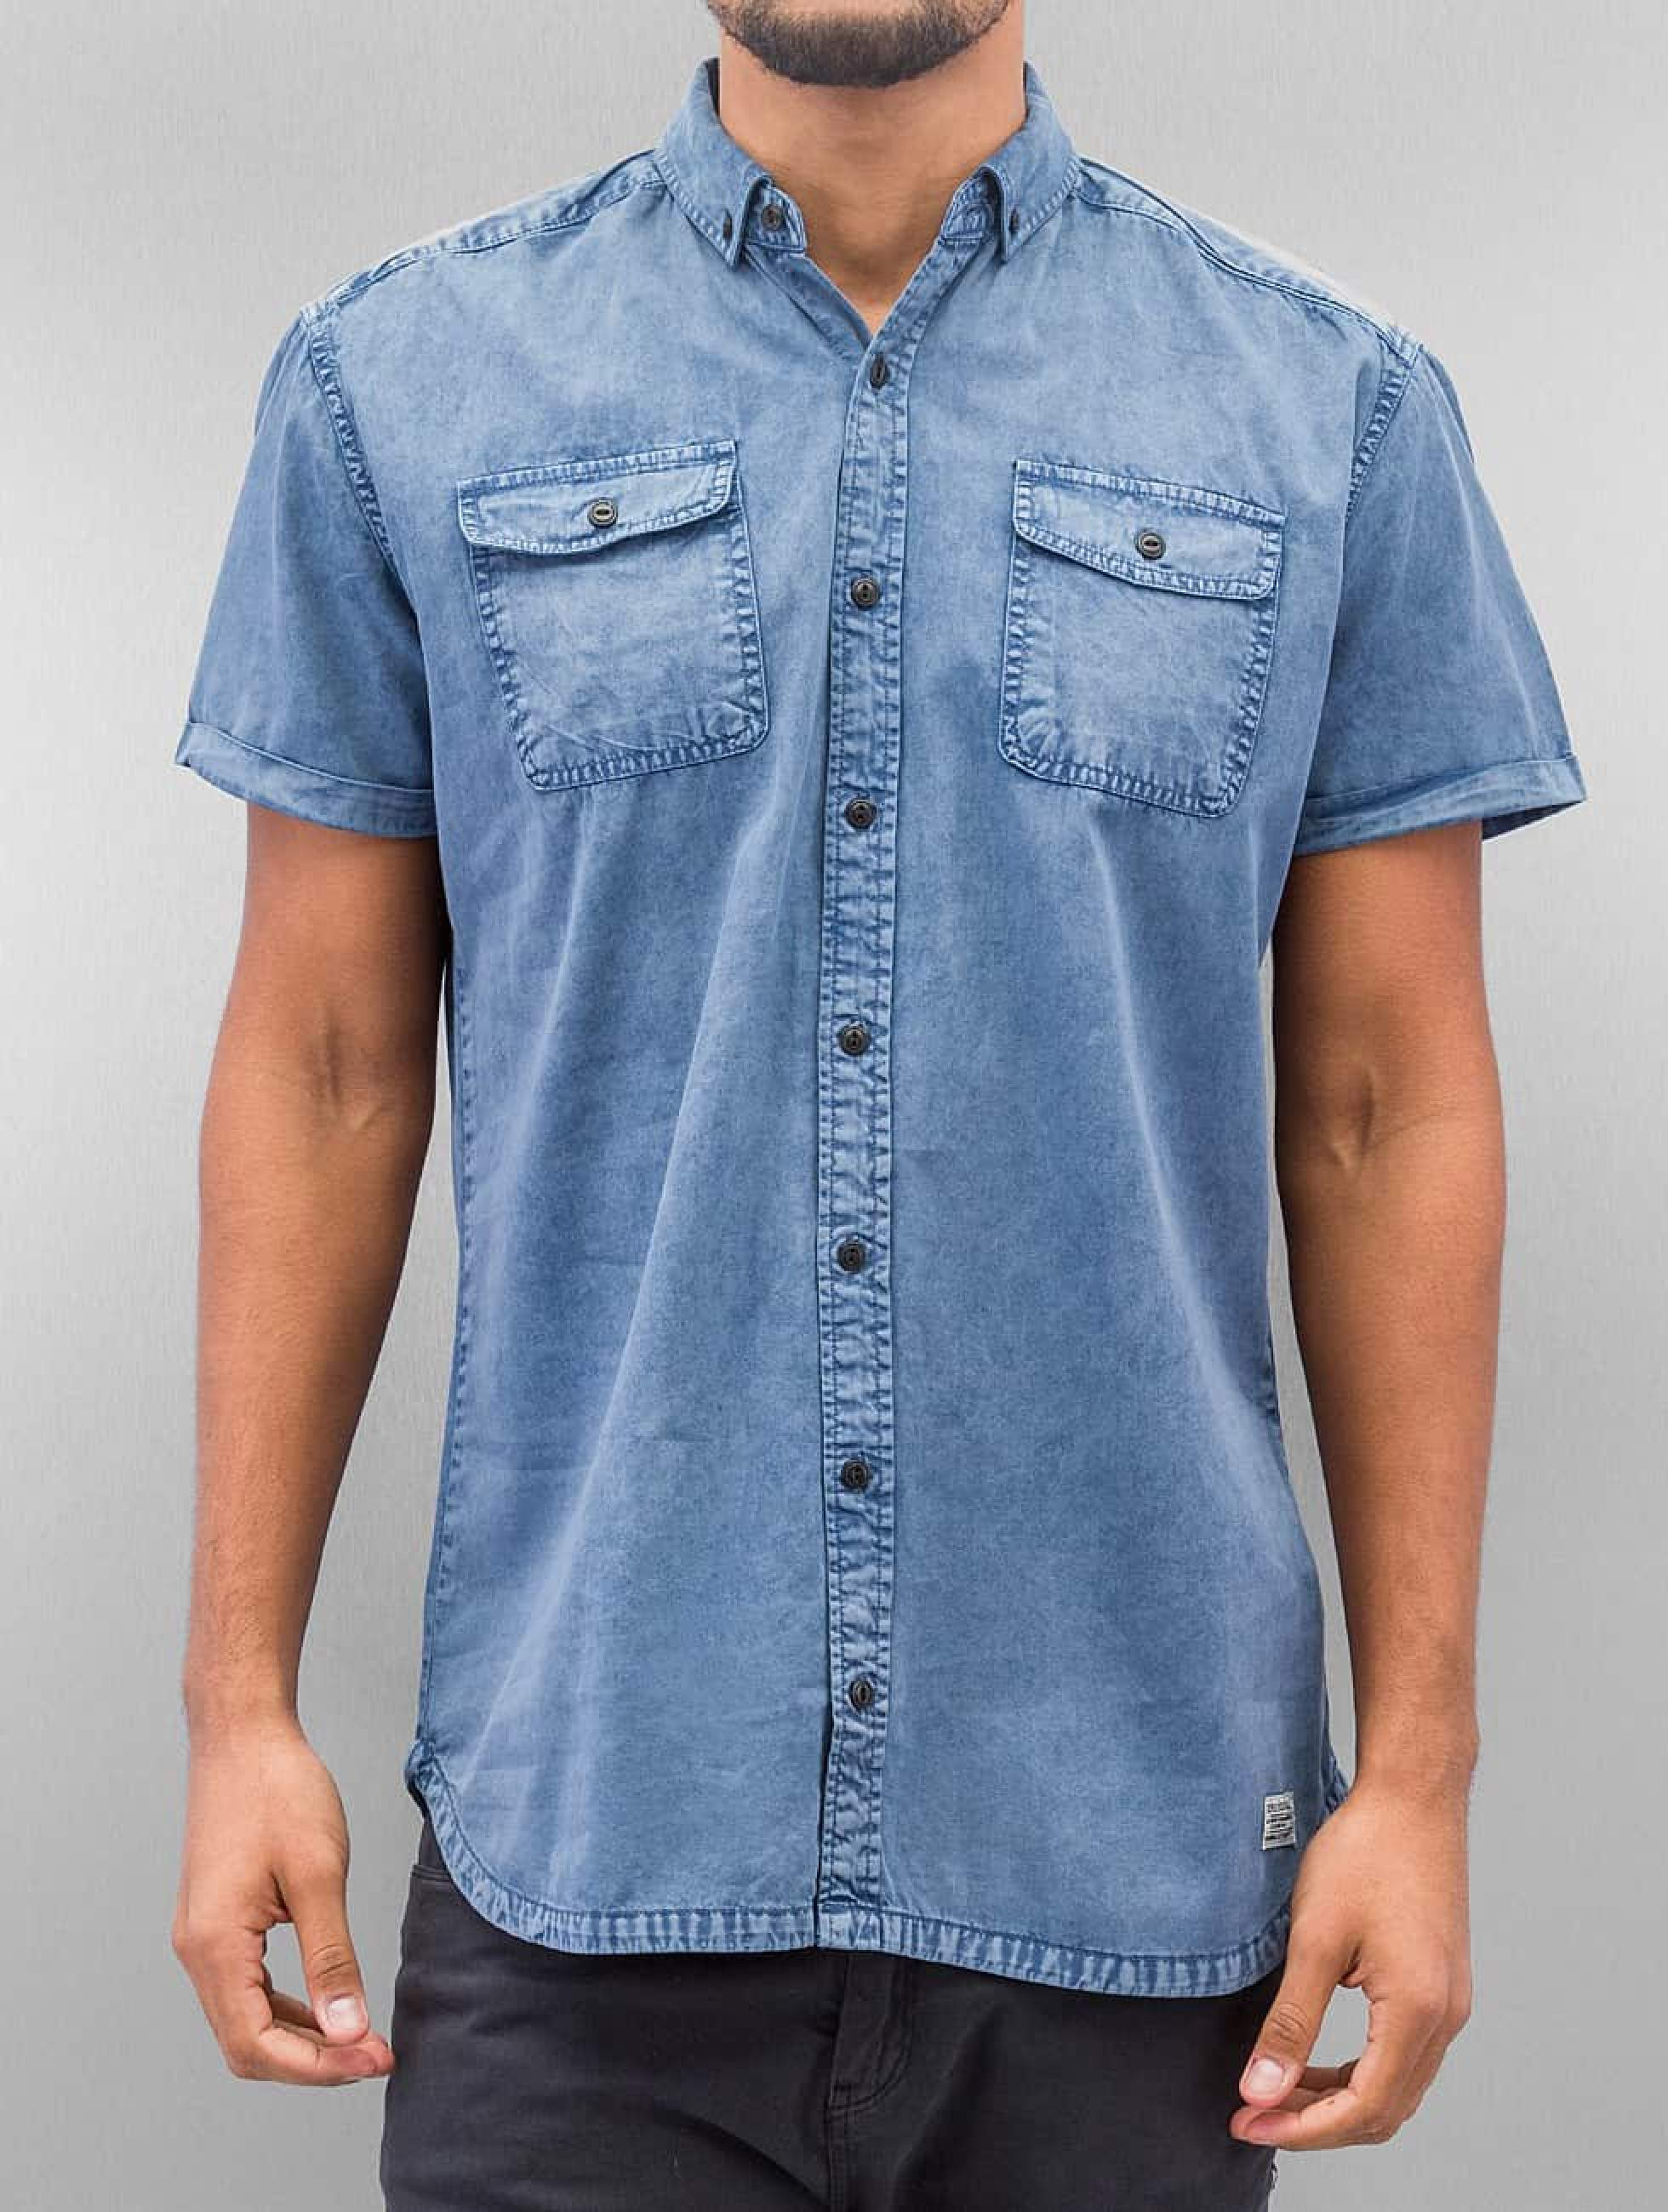 SHINE Original | Washed And Worn Out bleu Homme Chemise